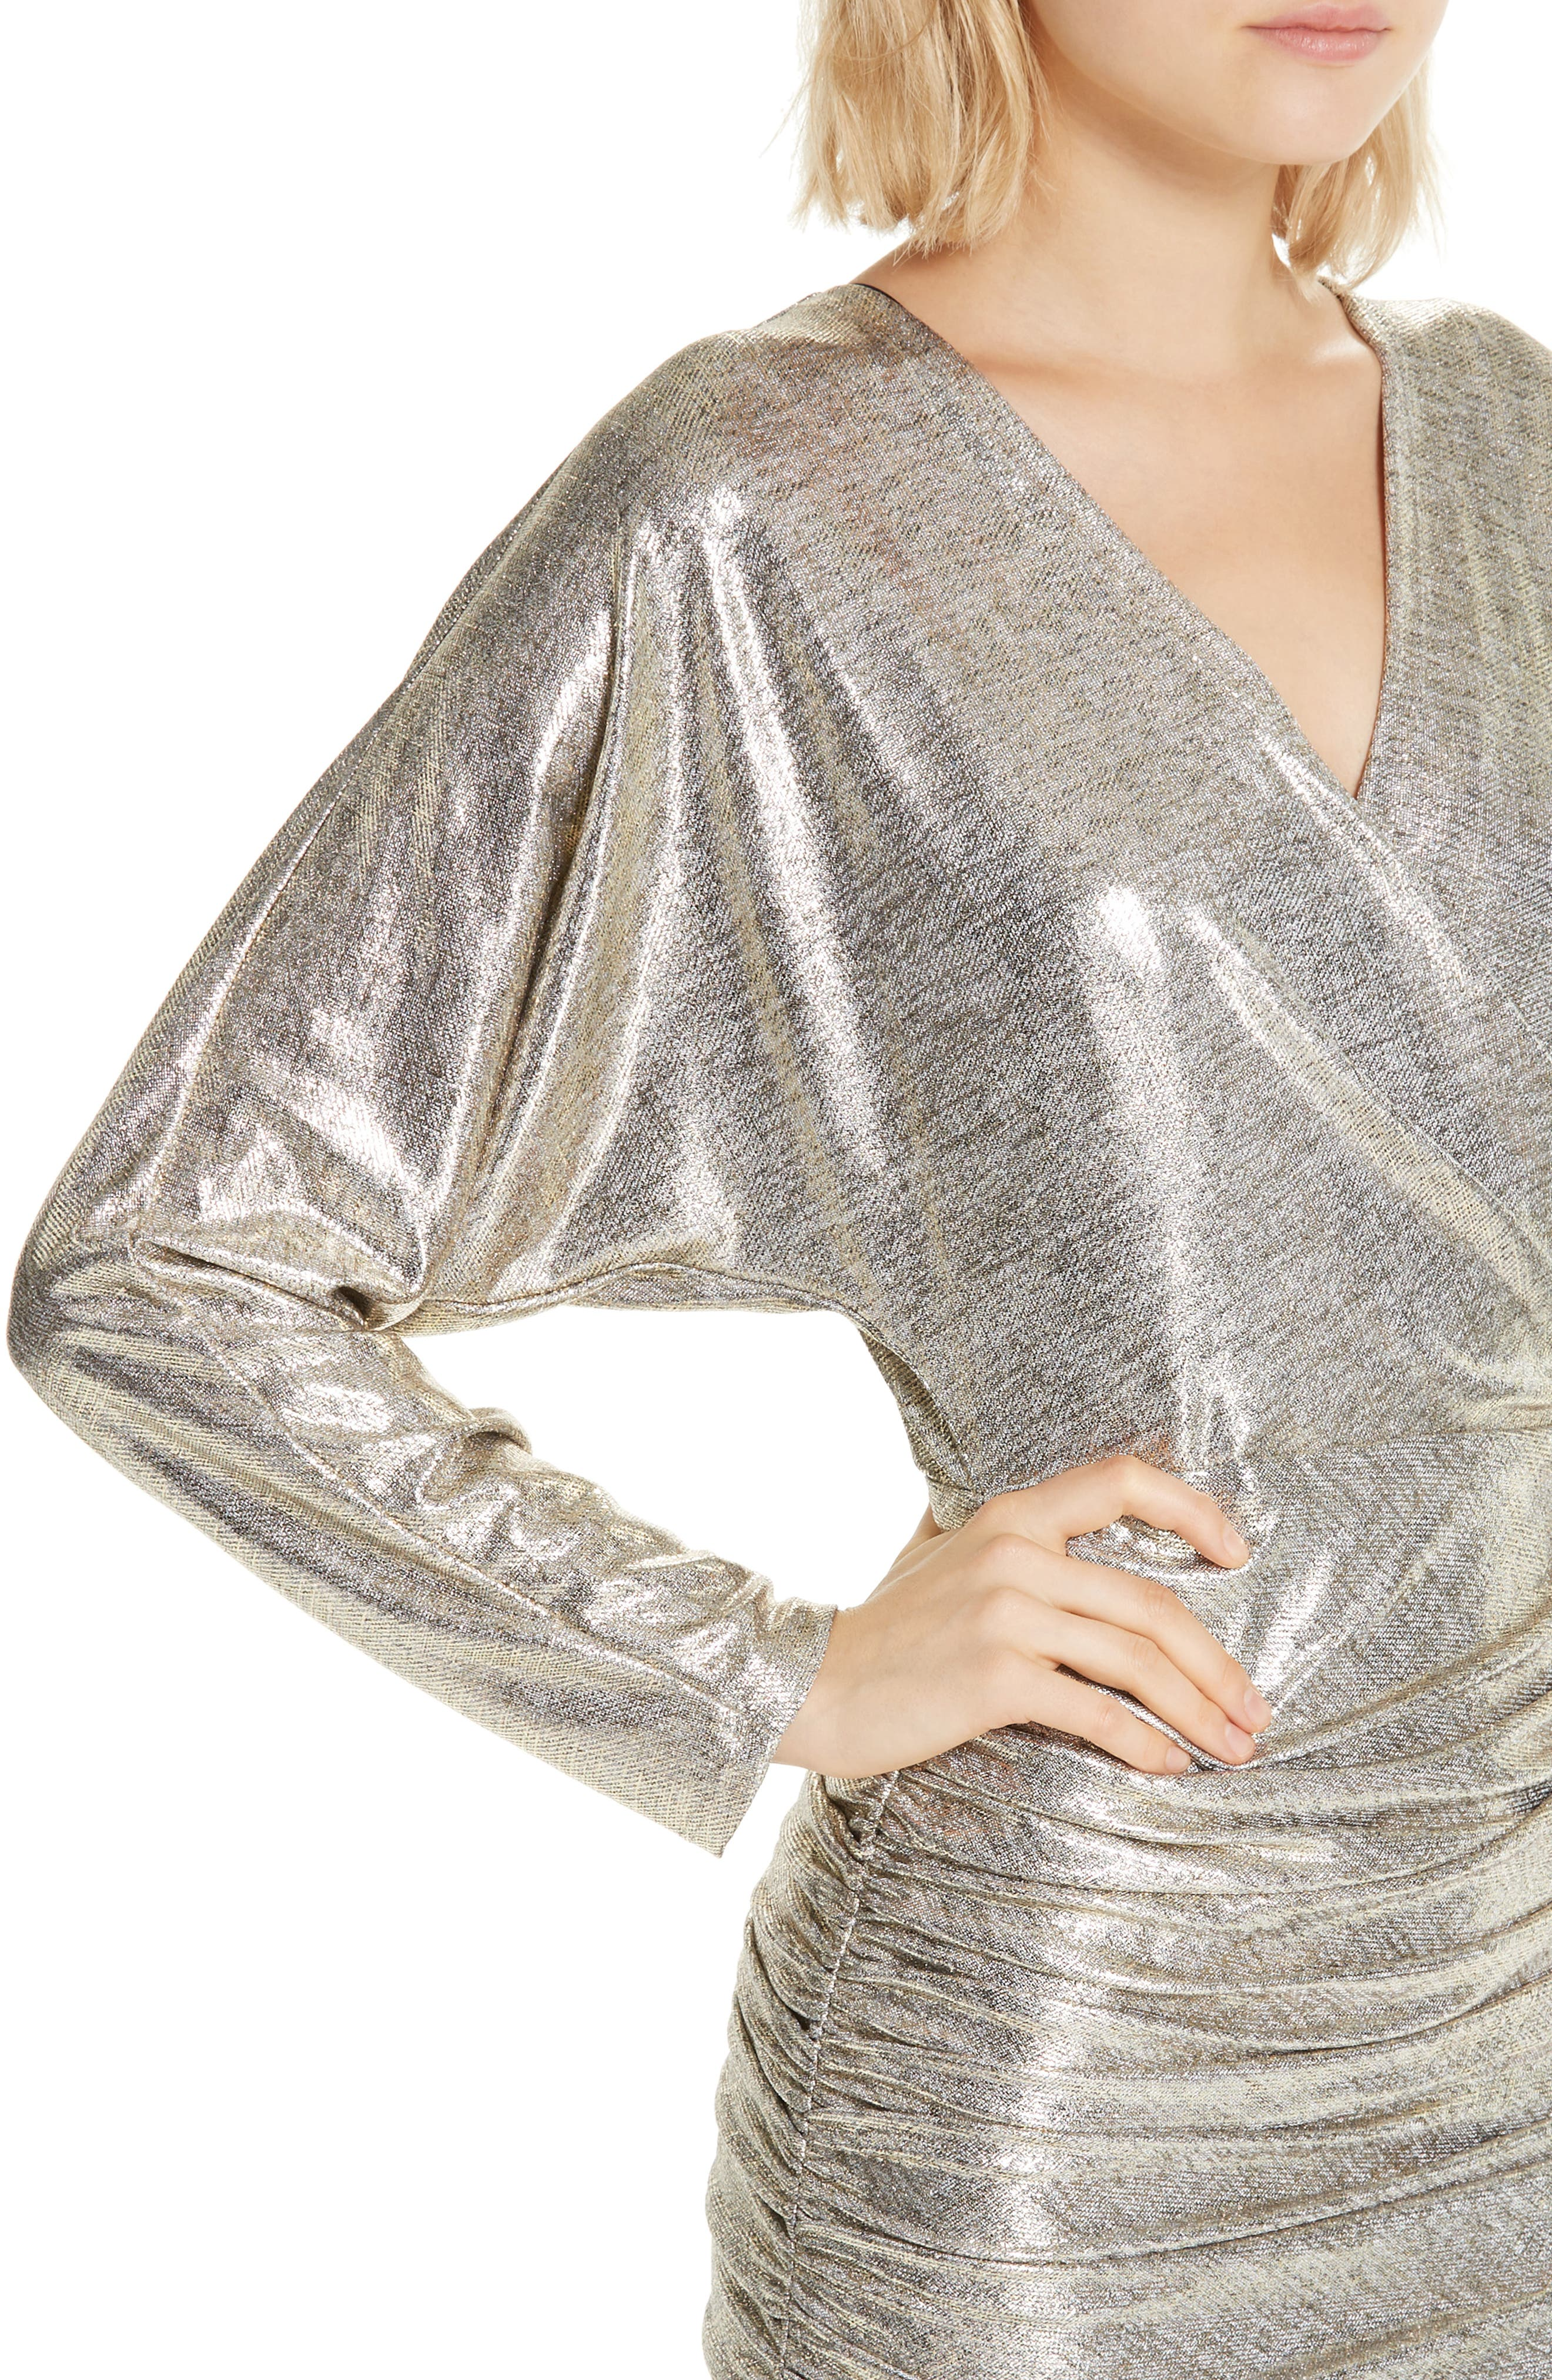 ALICE + OLIVIA, Pace Batwing Sleeve Party Dress, Alternate thumbnail 5, color, SILVER